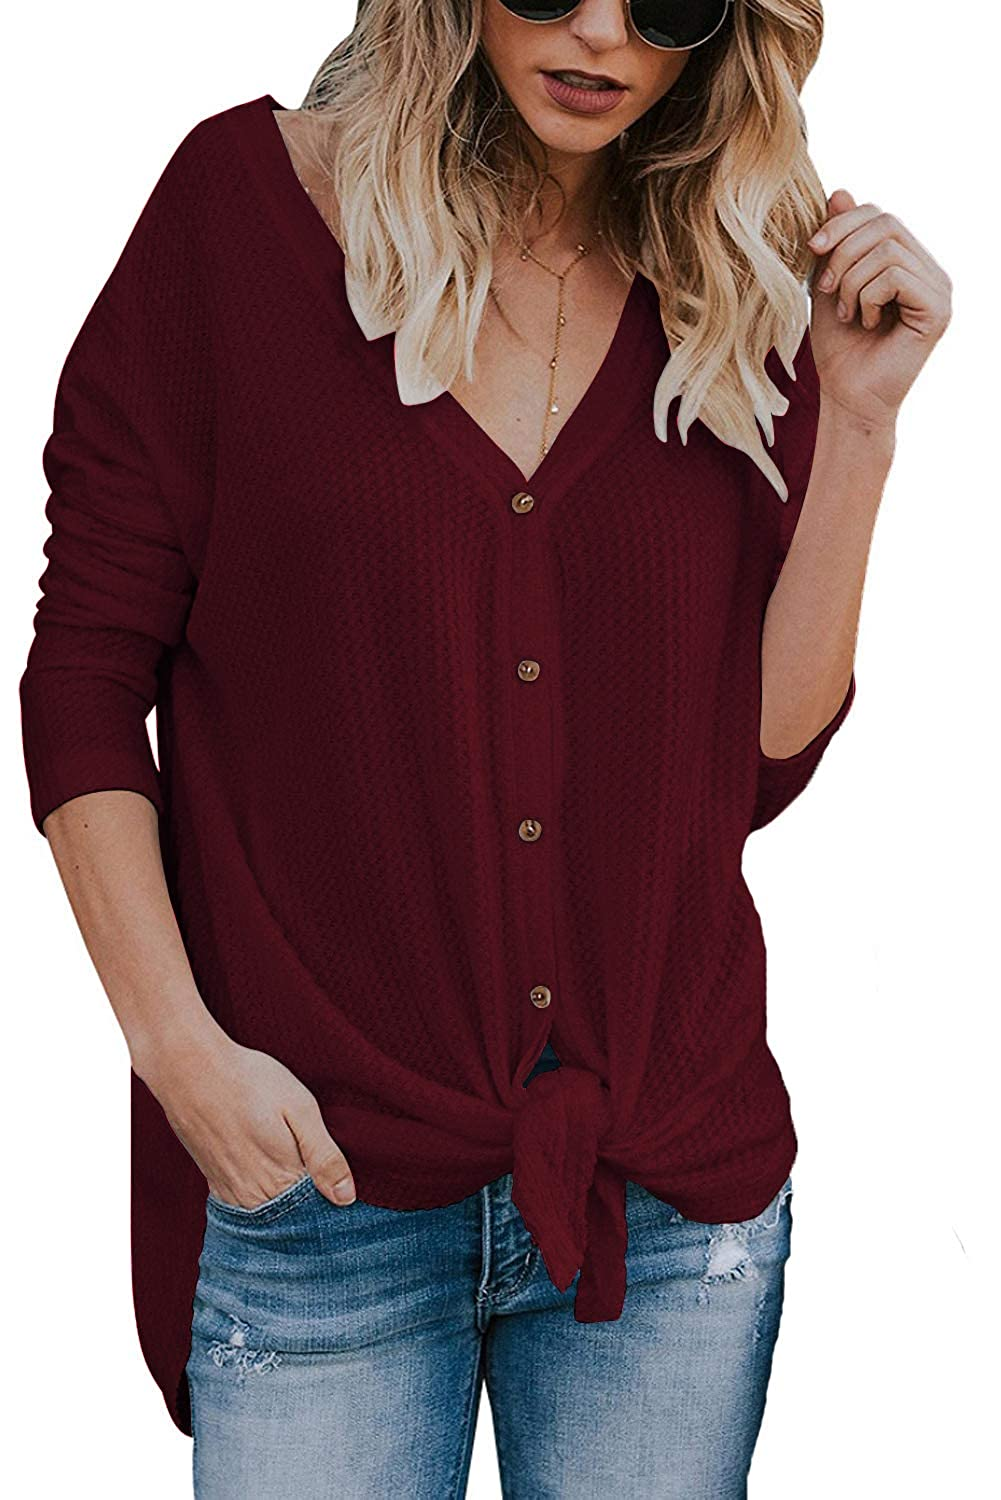 JOSIFER Women's V Neck Button Down Loose Fitting Shirts Waffle Knit Tunic Blouse